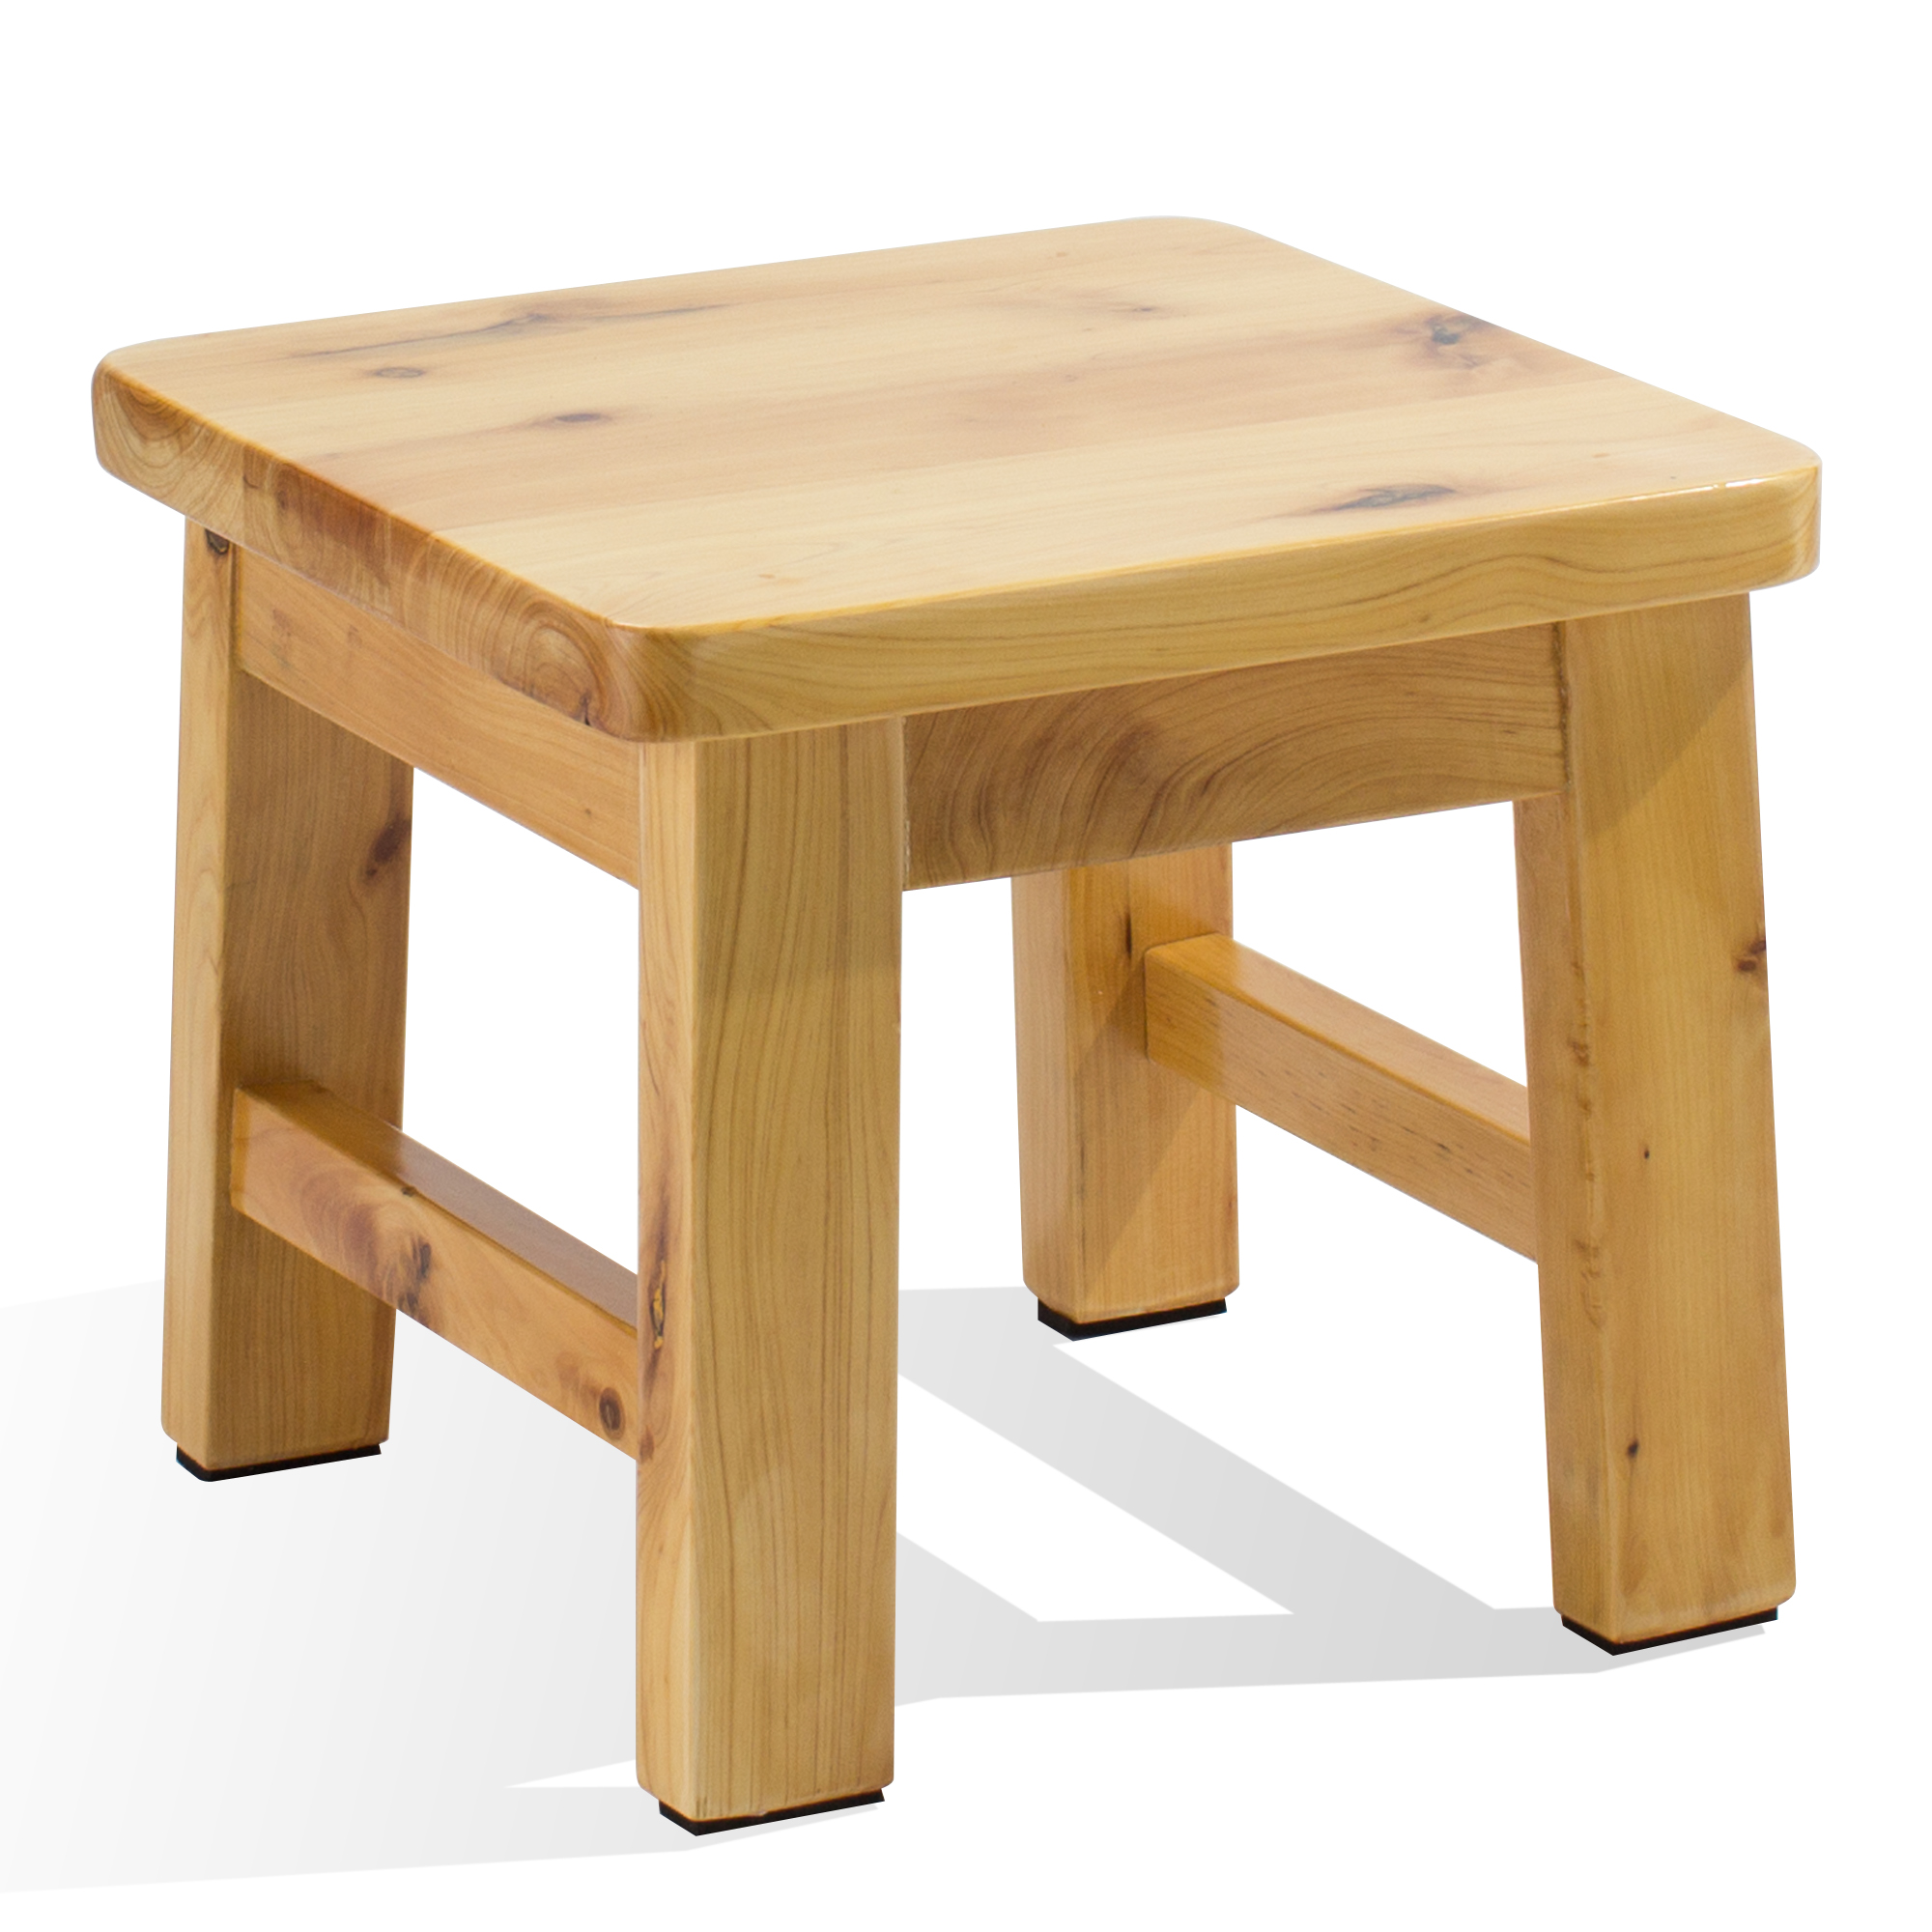 Frisby Hardwood Birch Footstool Water Resistant